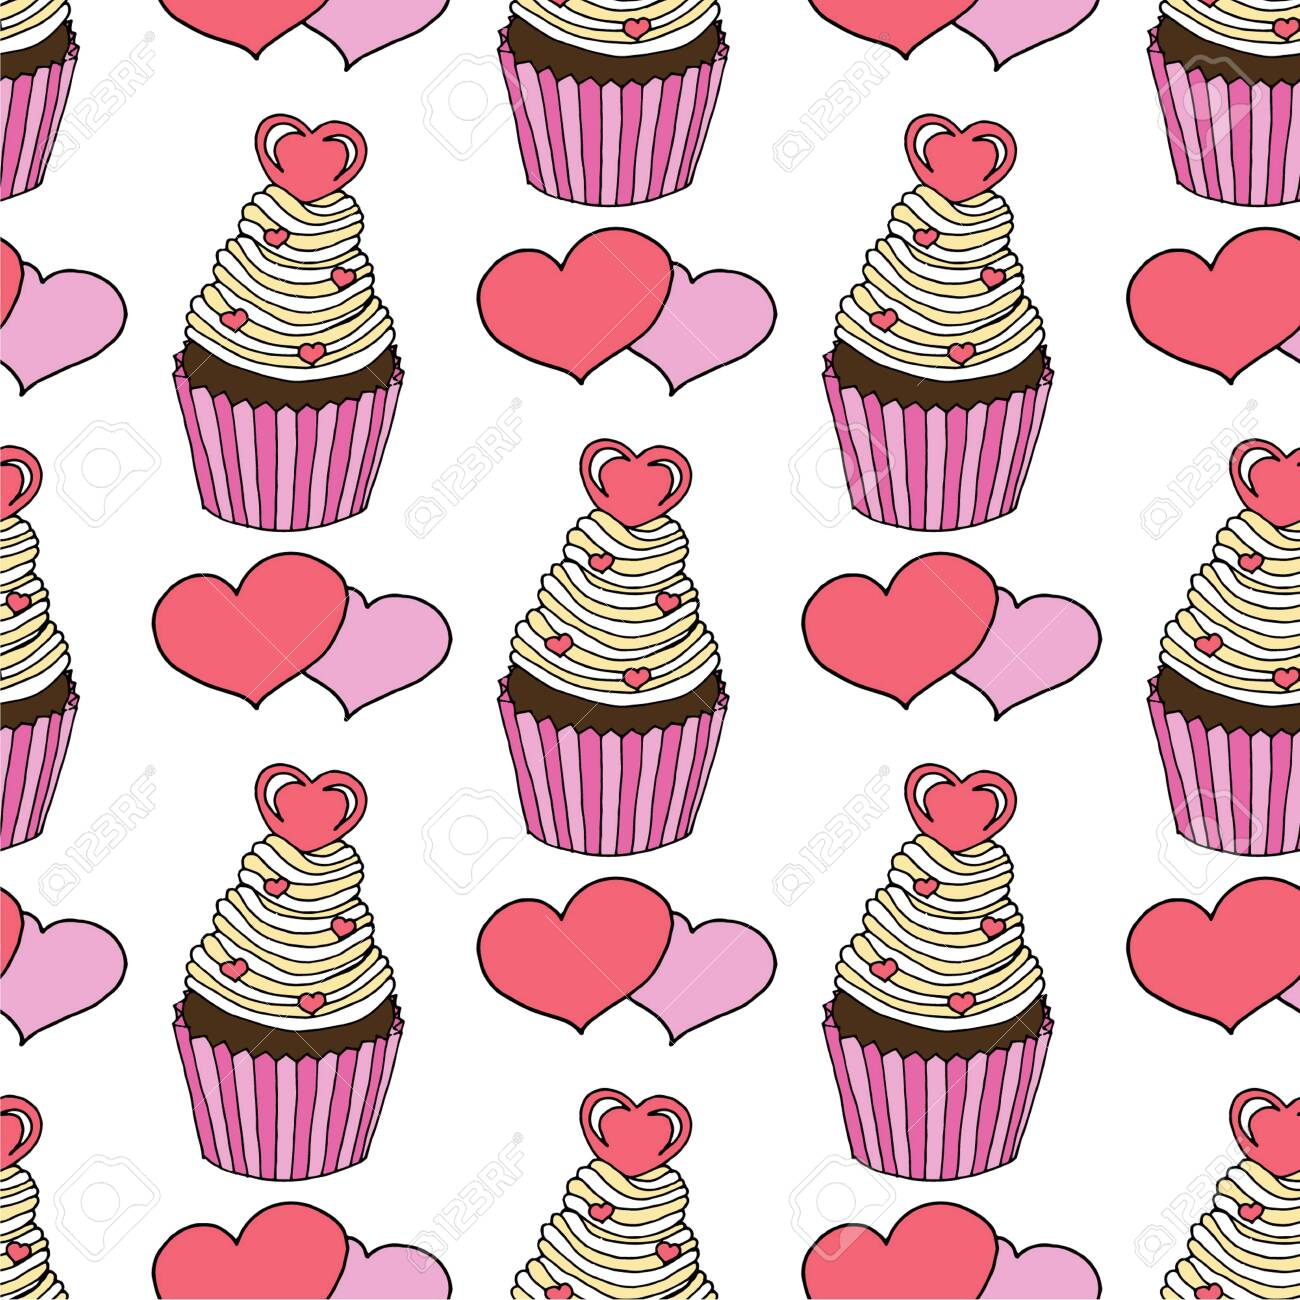 Vector graphic of the various sweets and desserts decorated into seamless pattern. Valentines day seamless pattern of hearts and cupcakes. Beautiful abstract pattern with Valentines day seamless pattern for decorative design. Logo element for wedding illustration. Vintage design. Greeting card. - 140032954